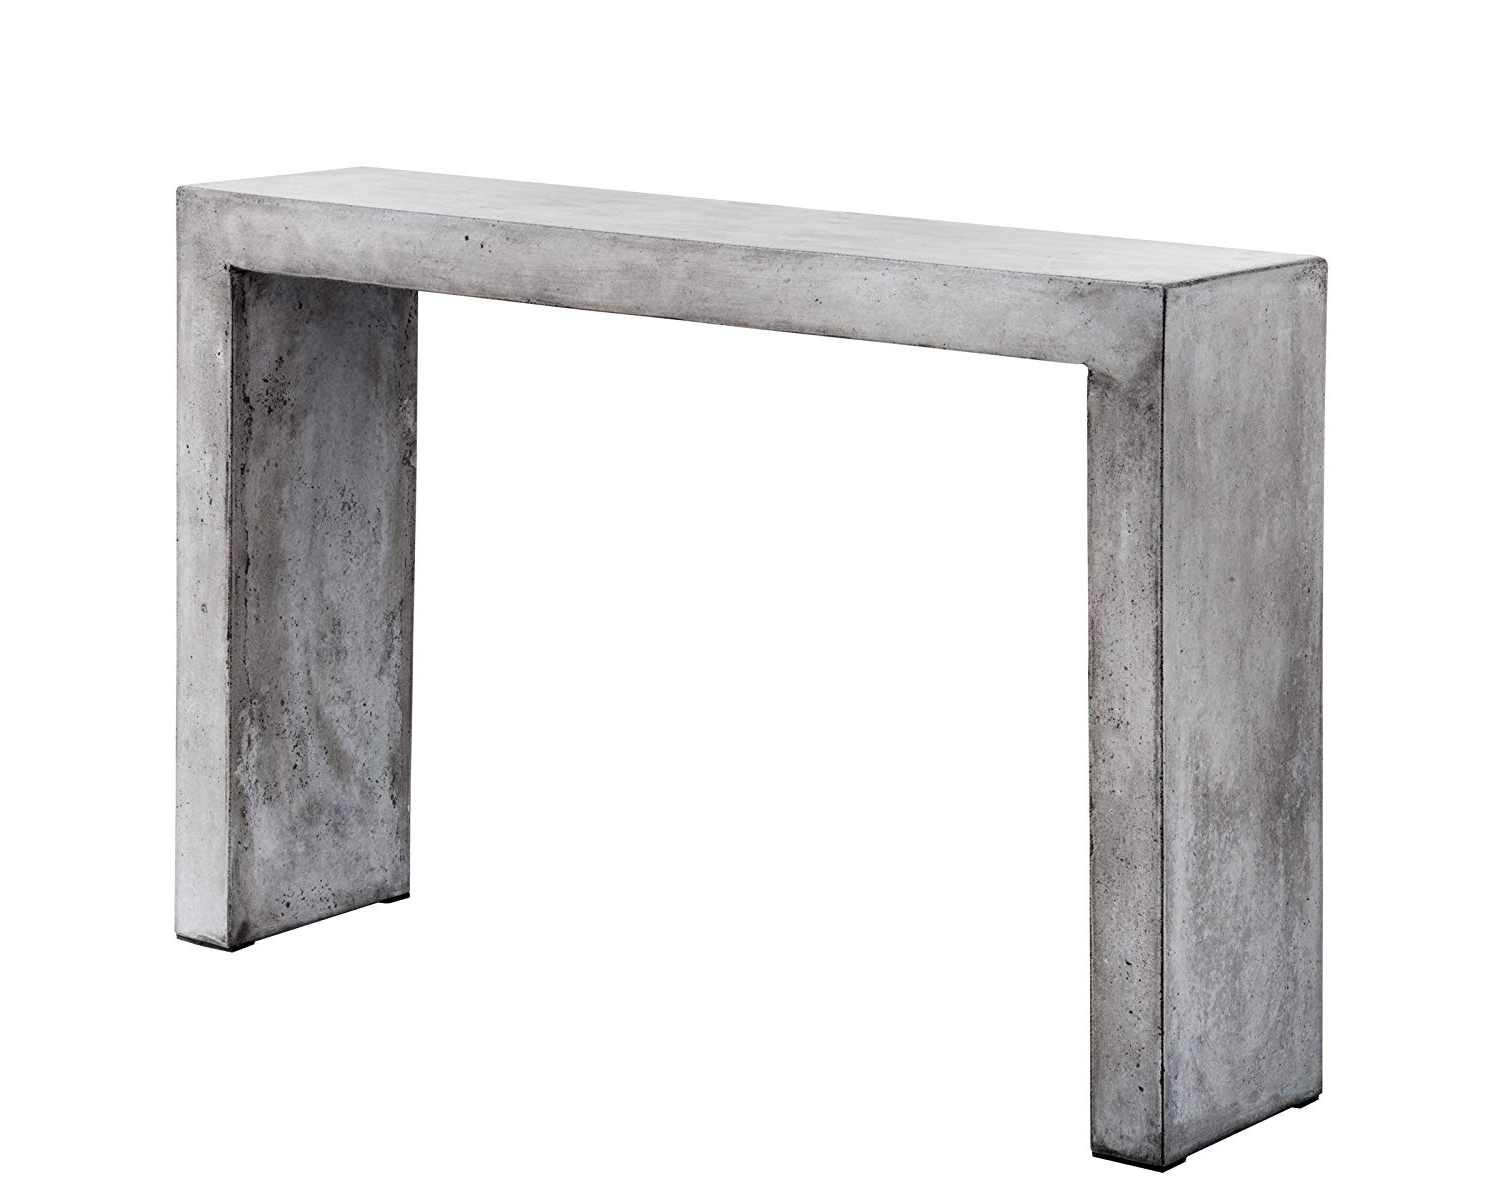 Parsons Black Marble Top & Stainless Steel Base 48X16 Console Tables Pertaining To Favorite Amazon: Sunpan Modern Axle Console Table, Grey: Kitchen & Dining (Gallery 4 of 20)